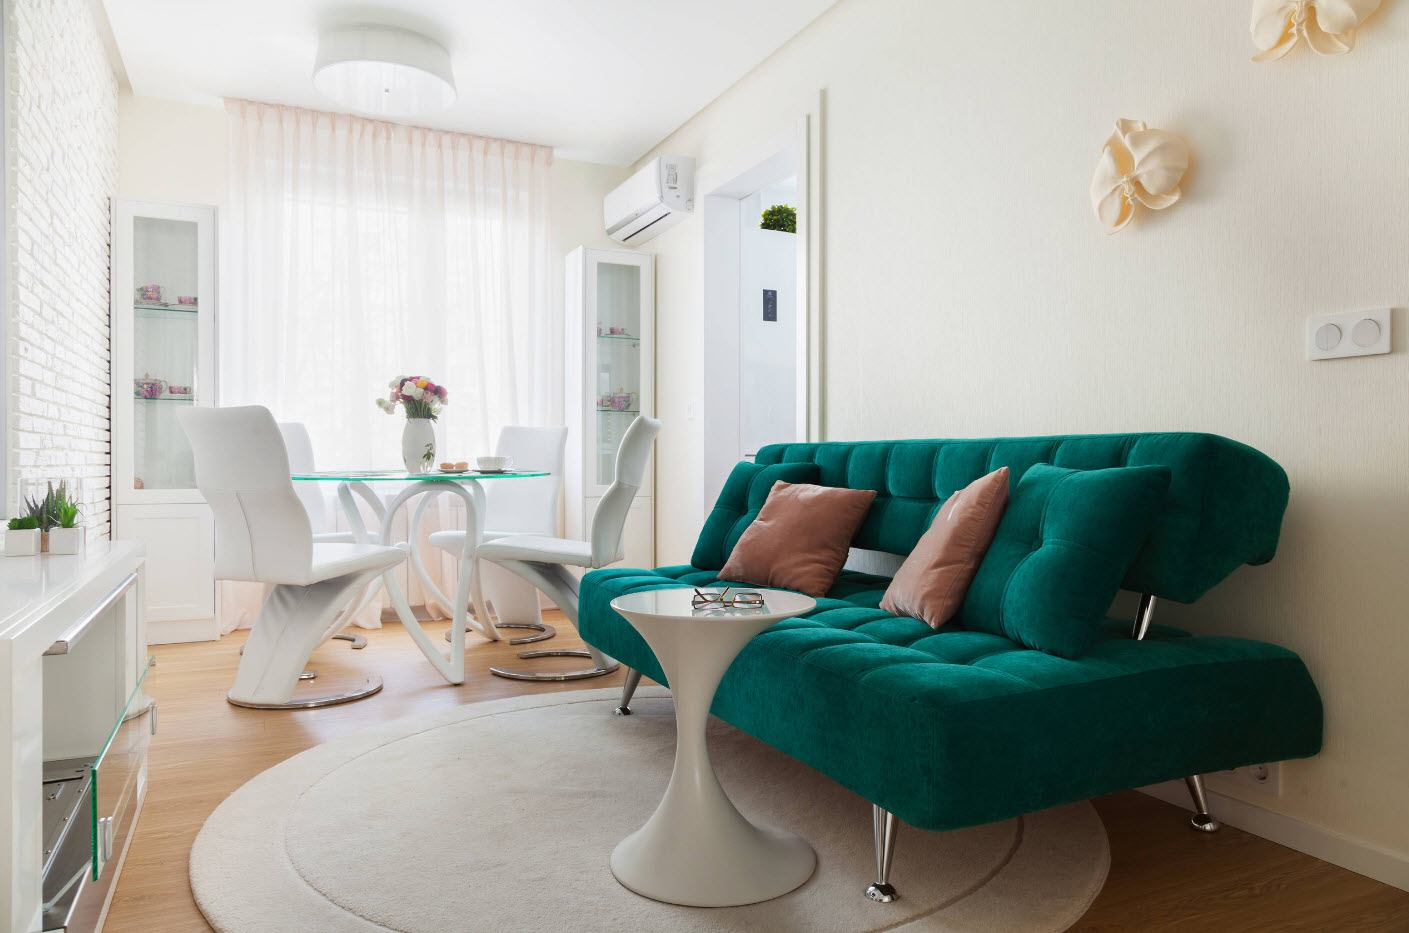 White Living Room: Different Style Interiors with Photos. Green colored sofa and glass table